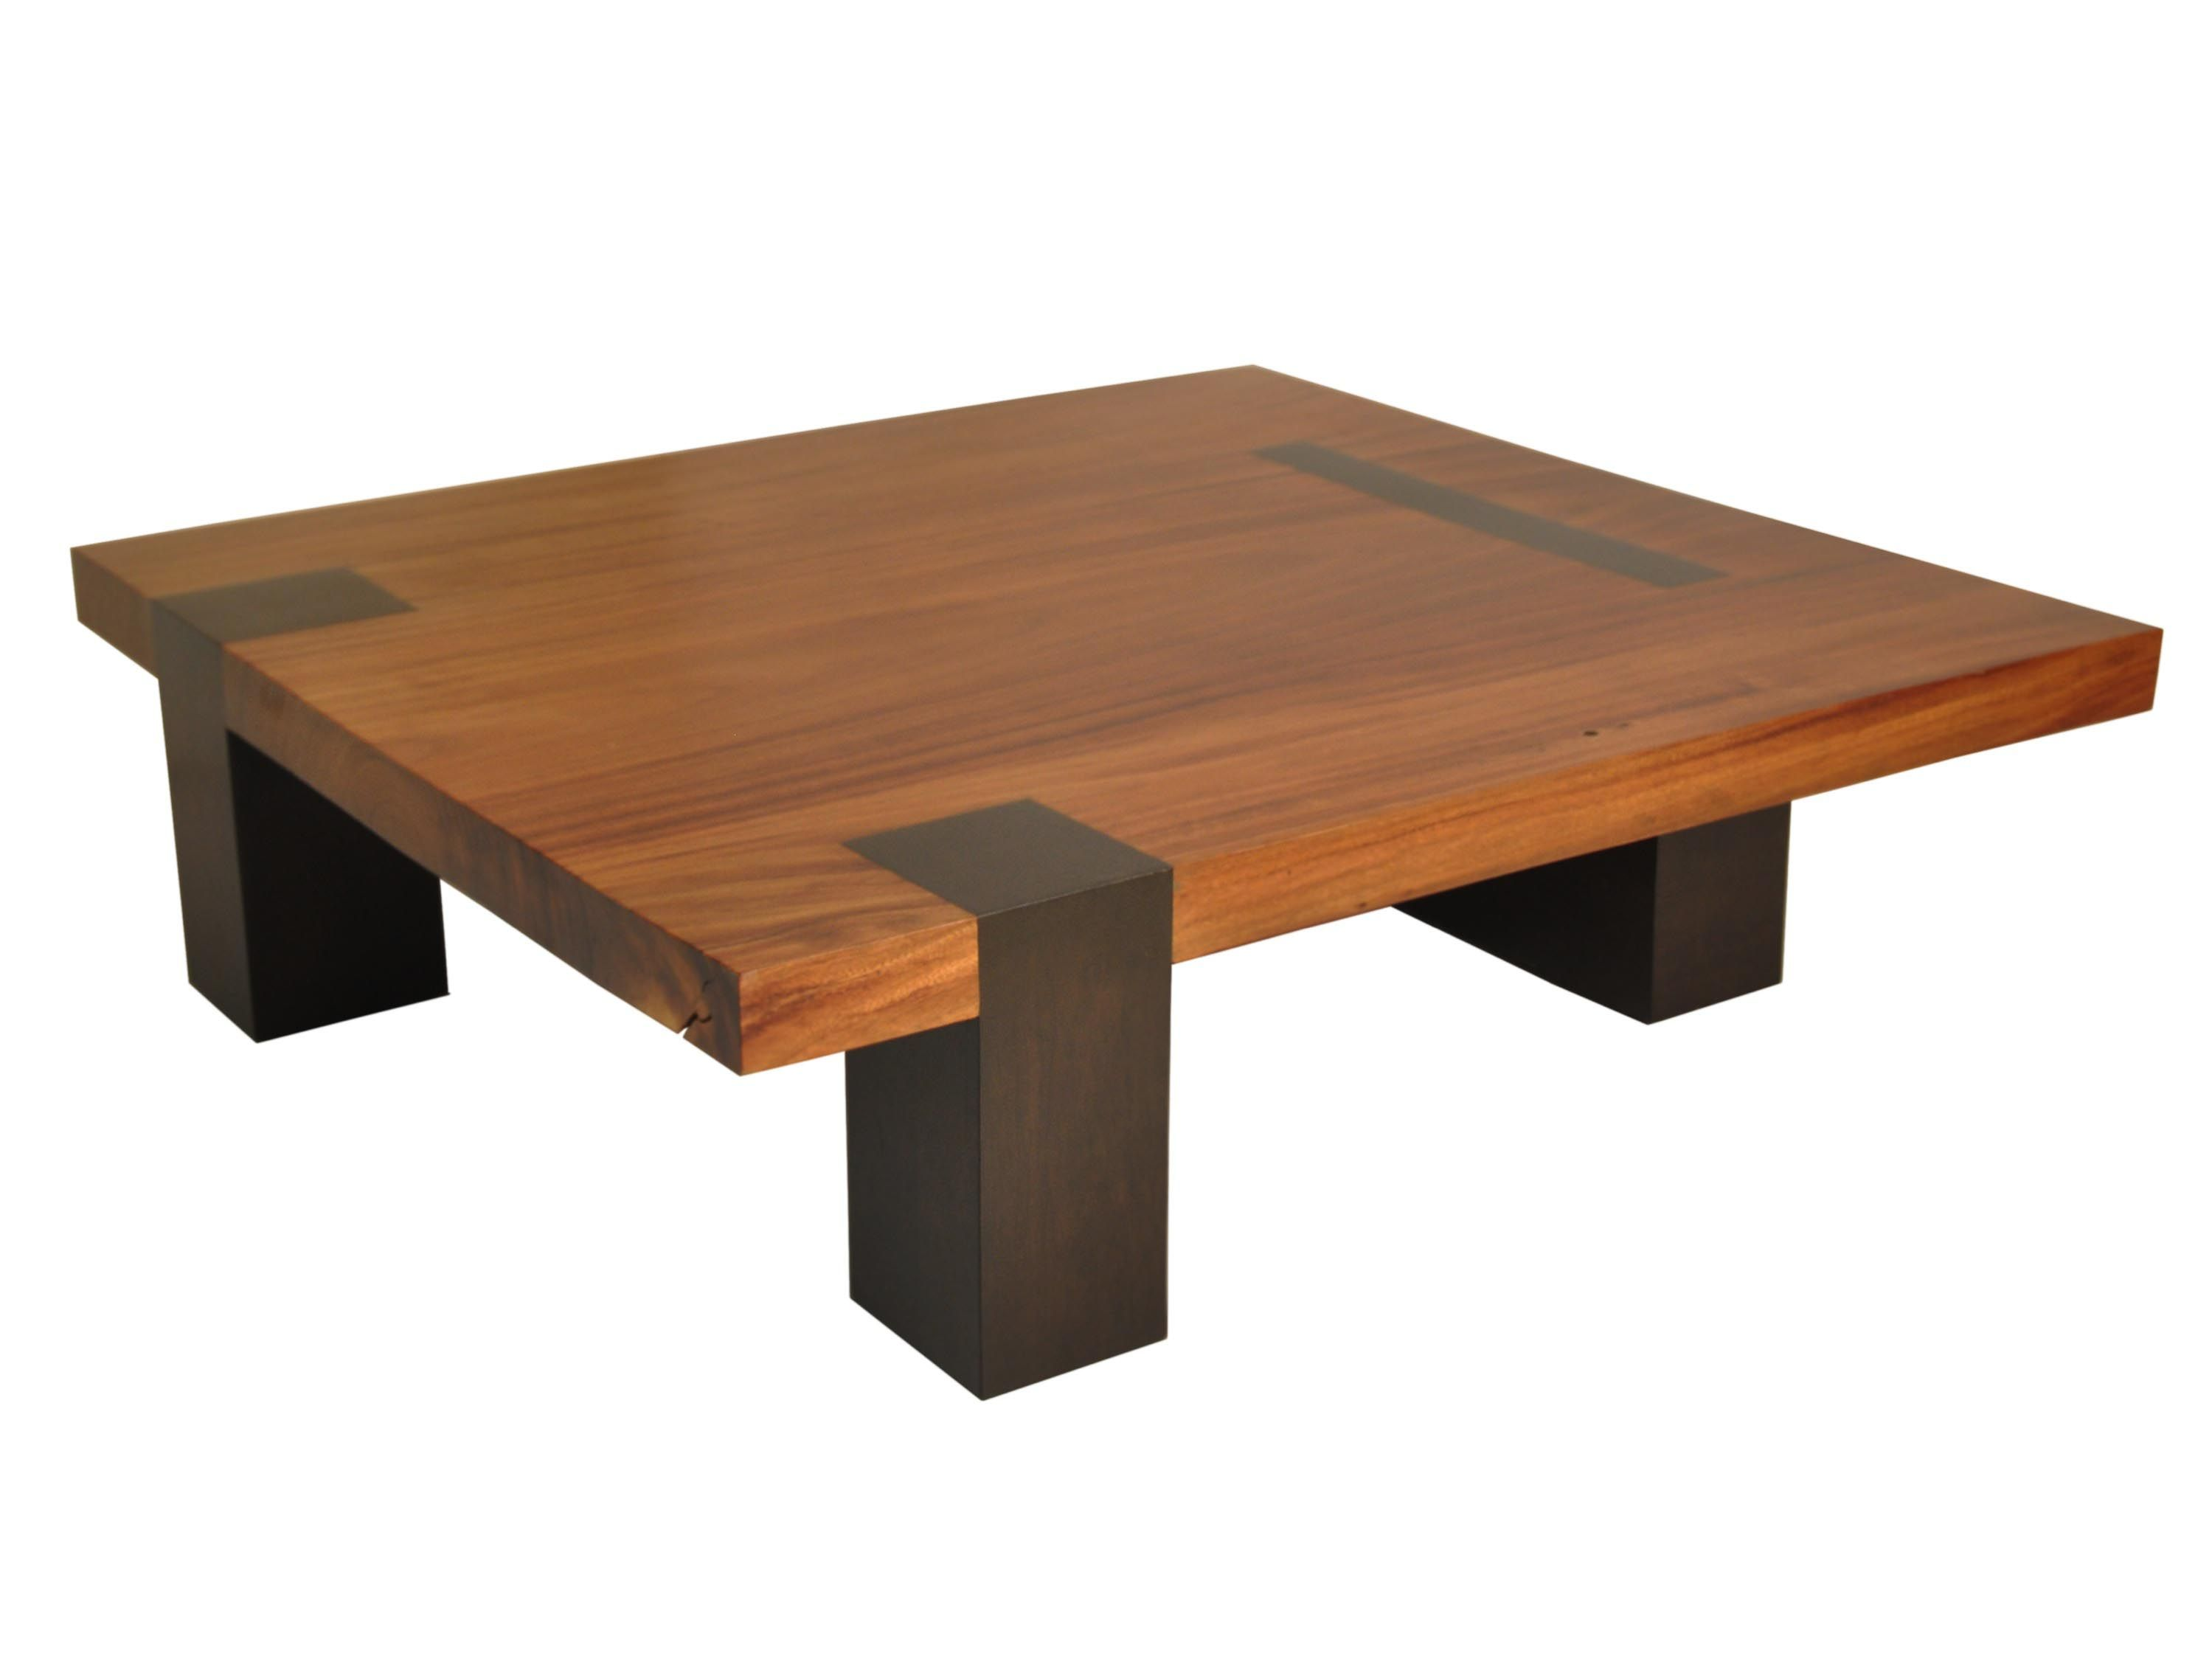 Custom Solid Wood Coffee Tables Contemporary Coffee Table Coffee Table Wood Large Square Coffee Table